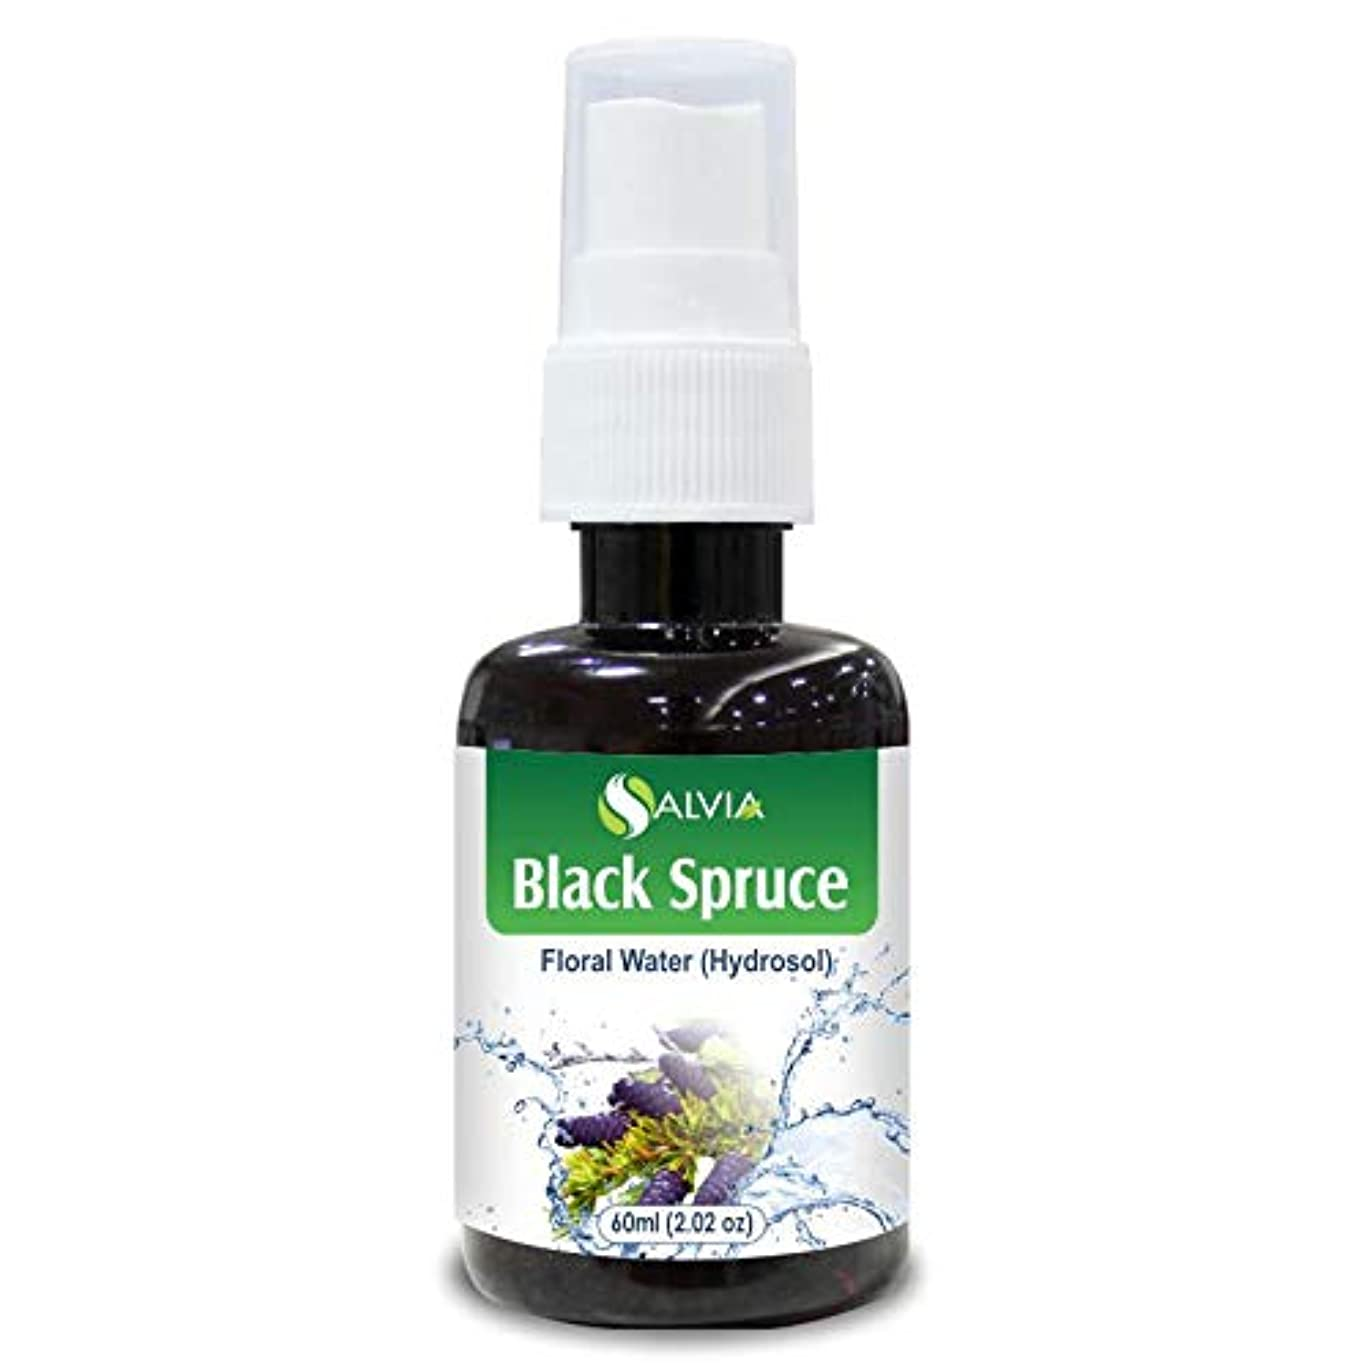 反毒理想的にはだますBlack Spruce Floral Water 60ml (Hydrosol) 100% Pure And Natural